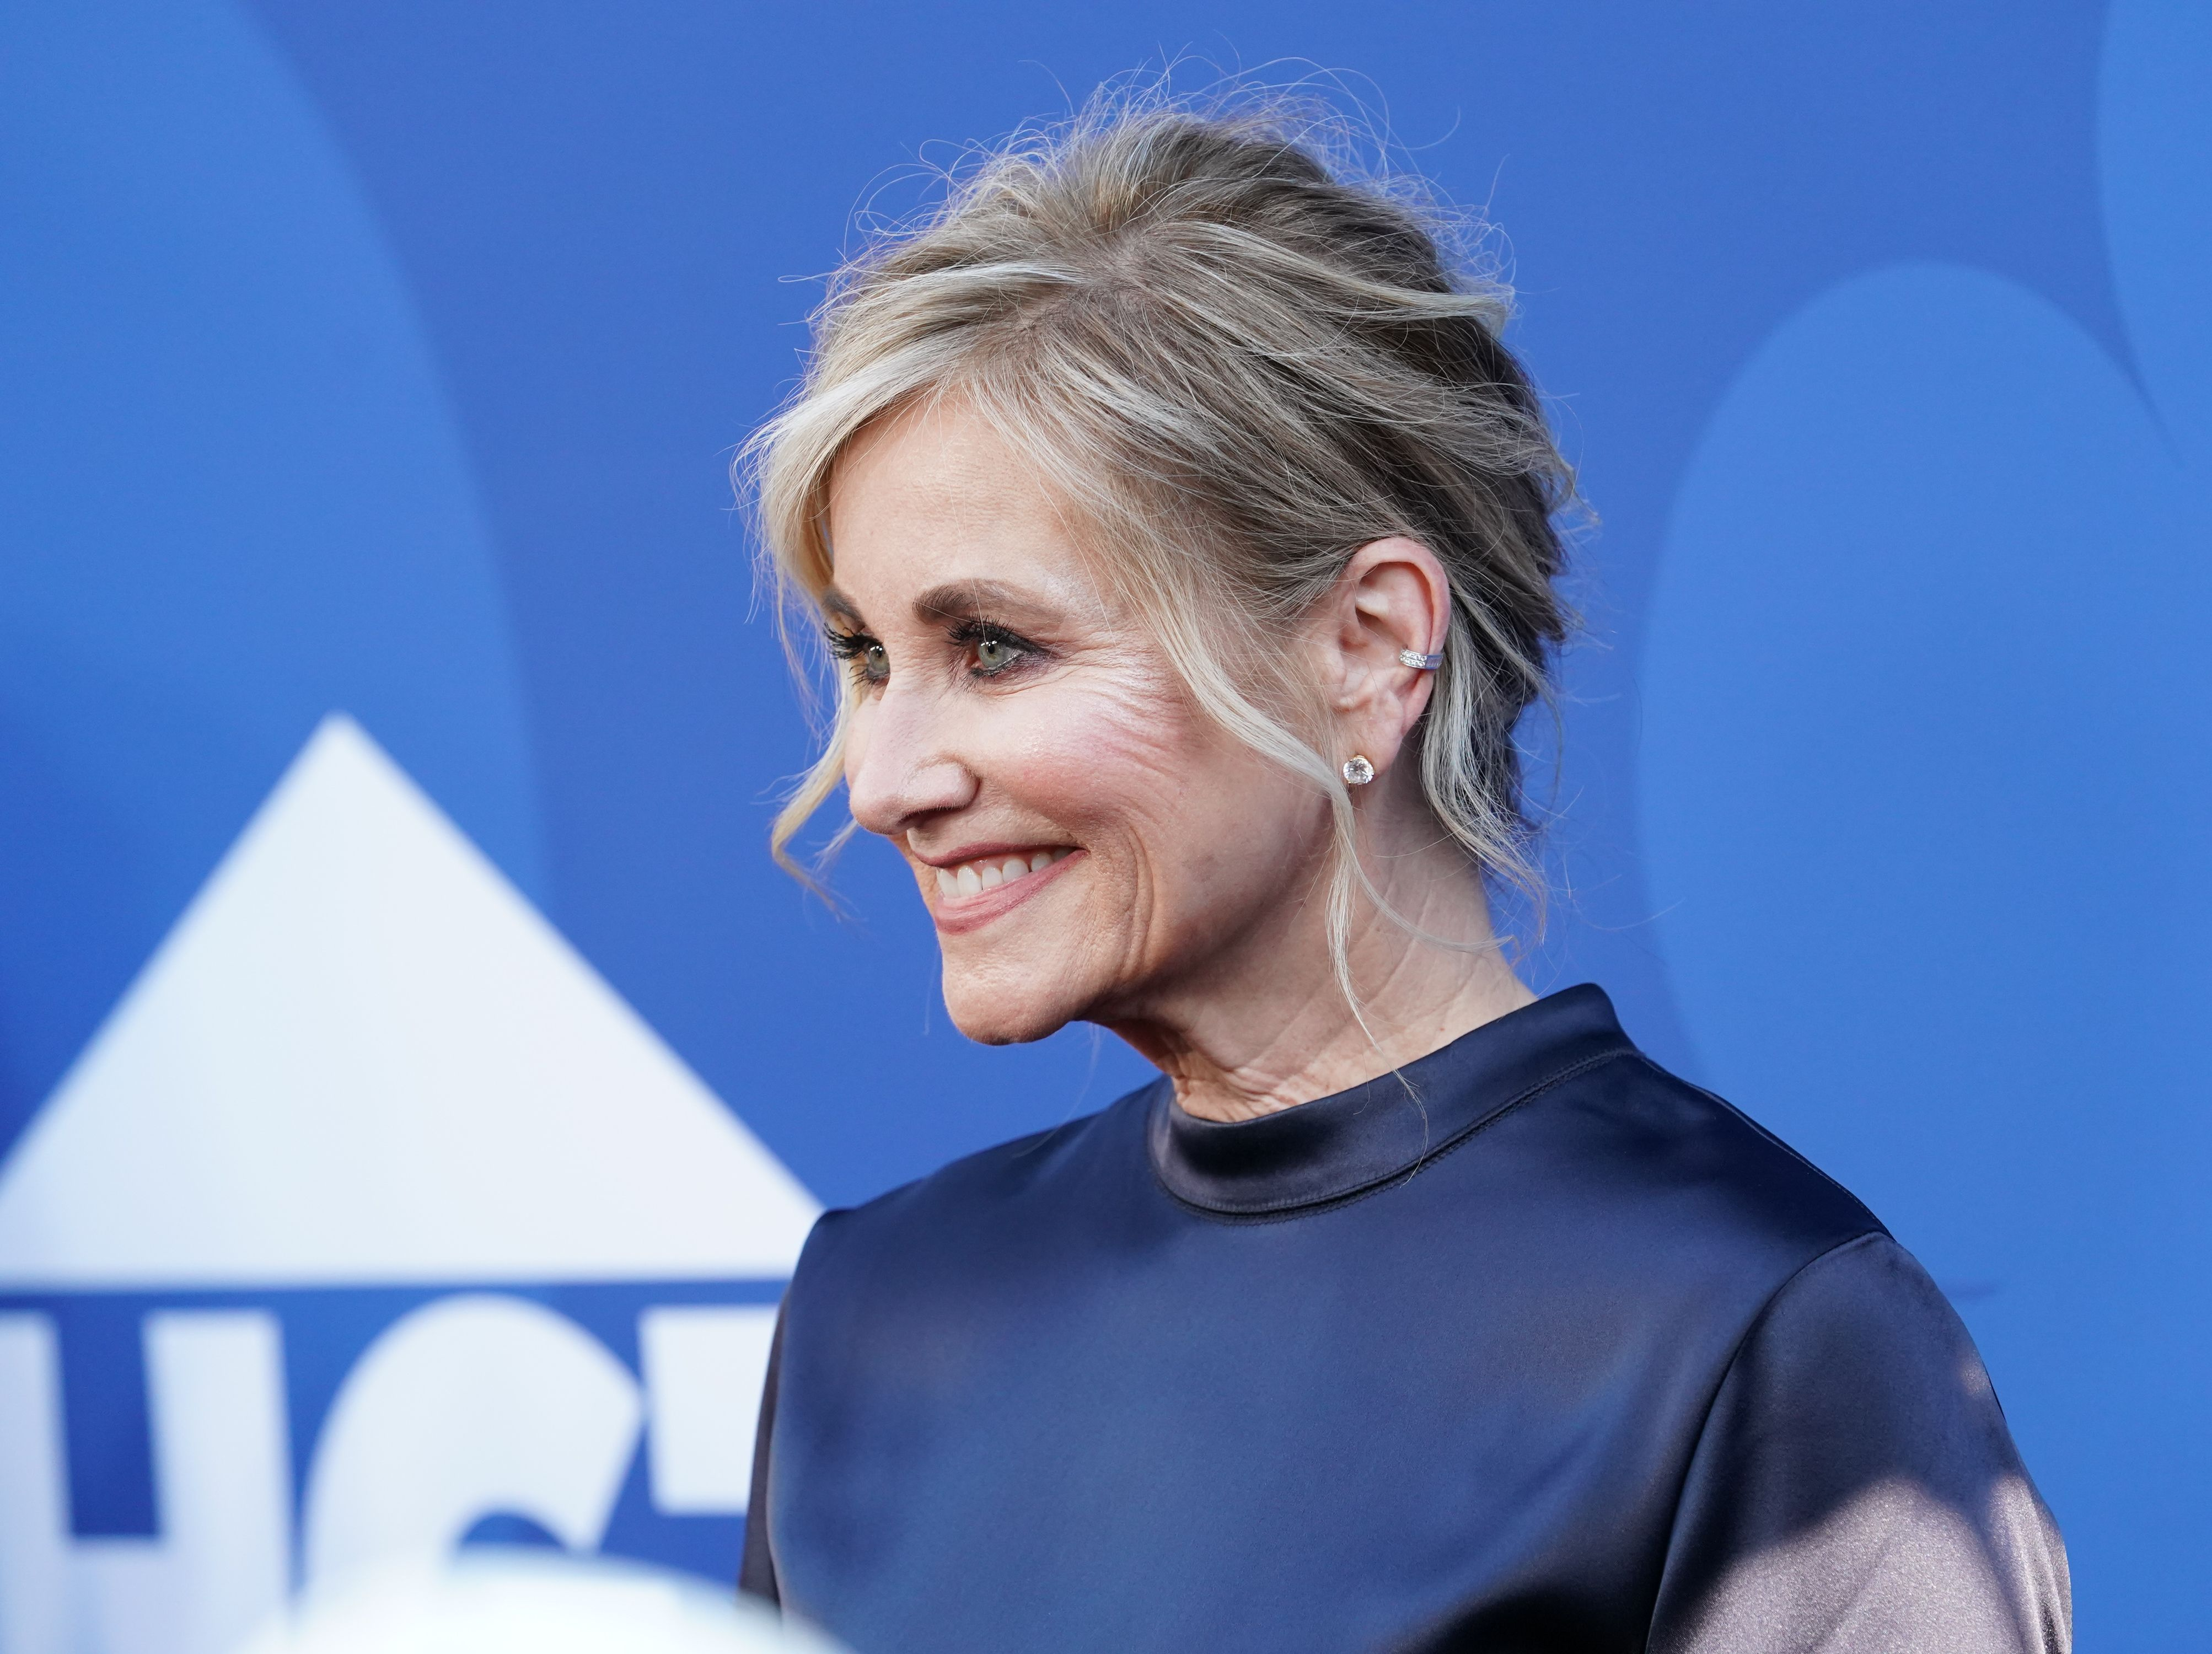 'A Very Brady Renovation' Star Maureen Mccormick Returns to HGTV in 'Frozen in Time'